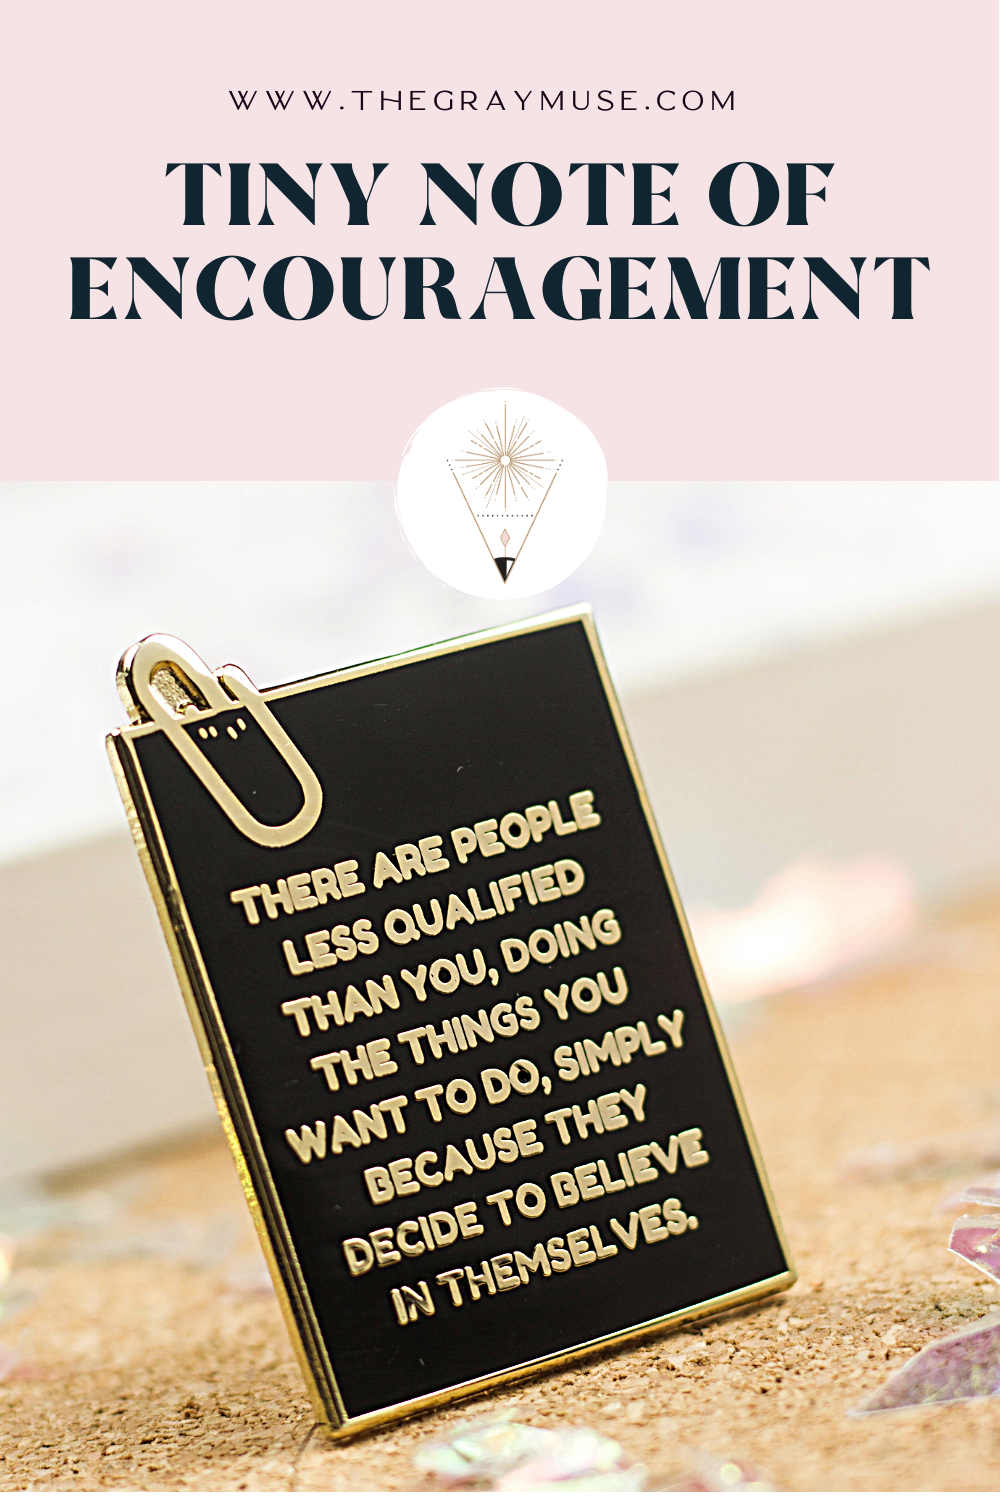 The Gray Muse Tiny Note of Encouragement